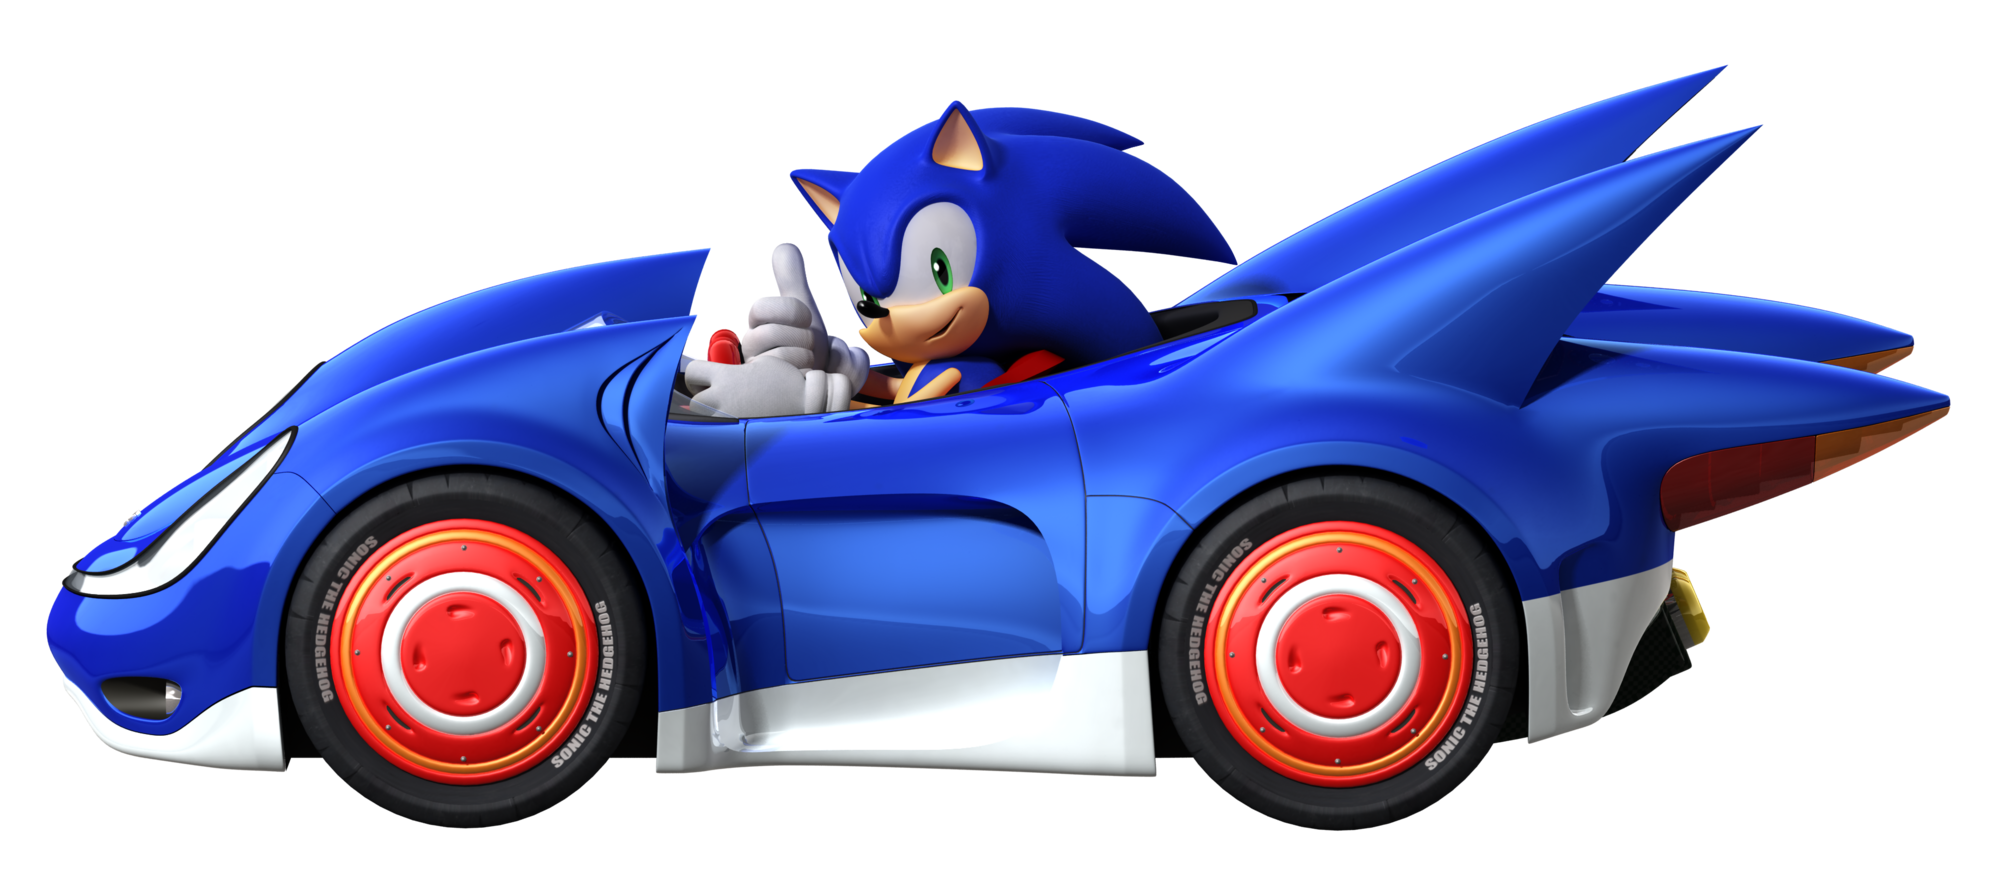 Image  Sonicbigpng  Sonic News Network  FANDOM powered by Wikia